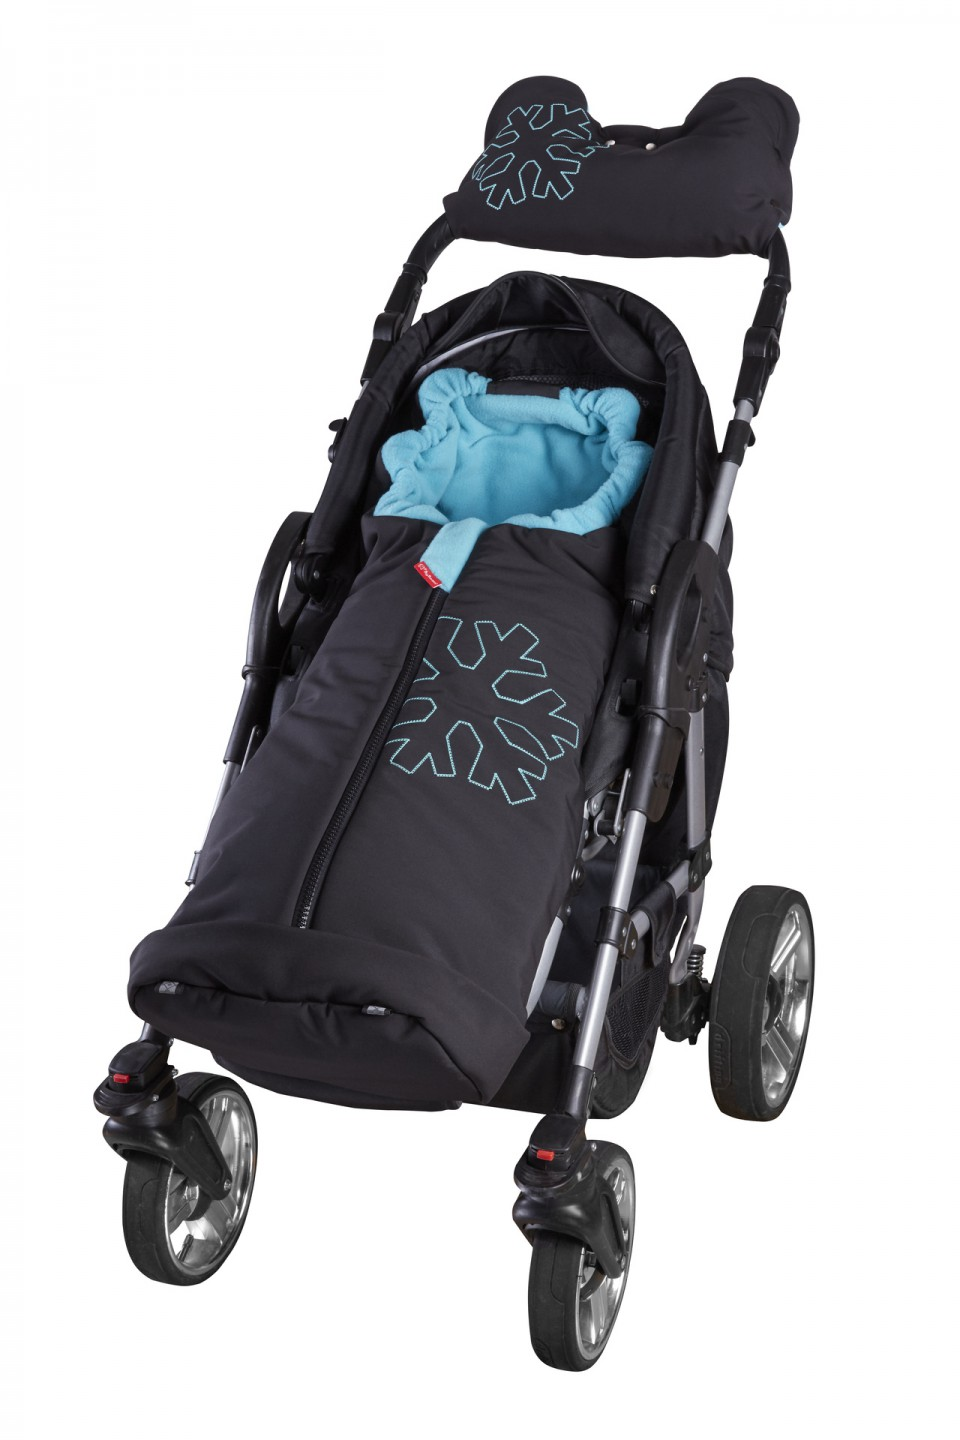 byboom softshell handw rmer thermo aktiv f r kinderwagen buggy jogger radanh nger. Black Bedroom Furniture Sets. Home Design Ideas